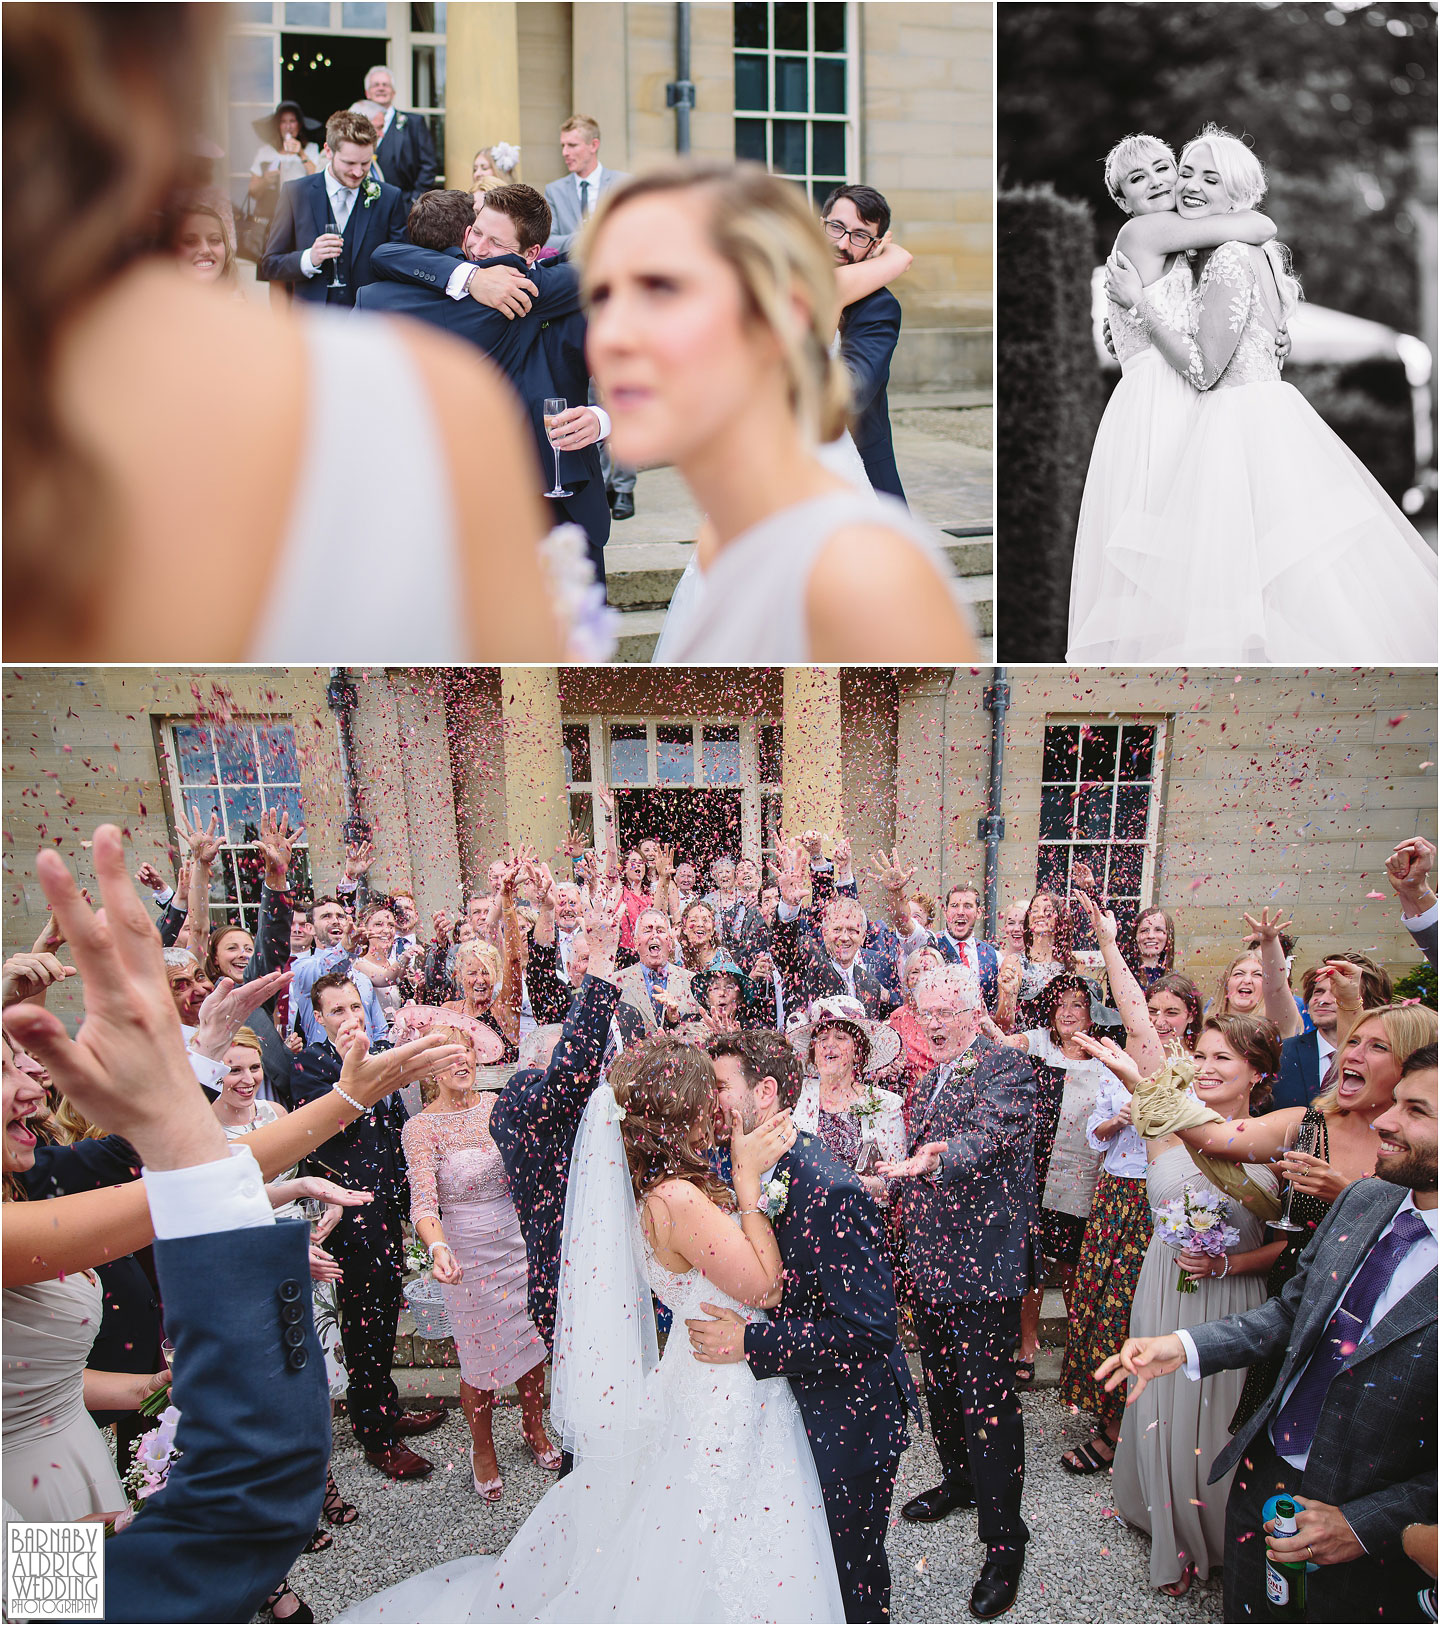 Hugs and Confetti at Saltmarshe Hall near Goole in East Yorkshire, Wedding photography at Saltmarshe Hall, East Yorkshire Wedding Photographer